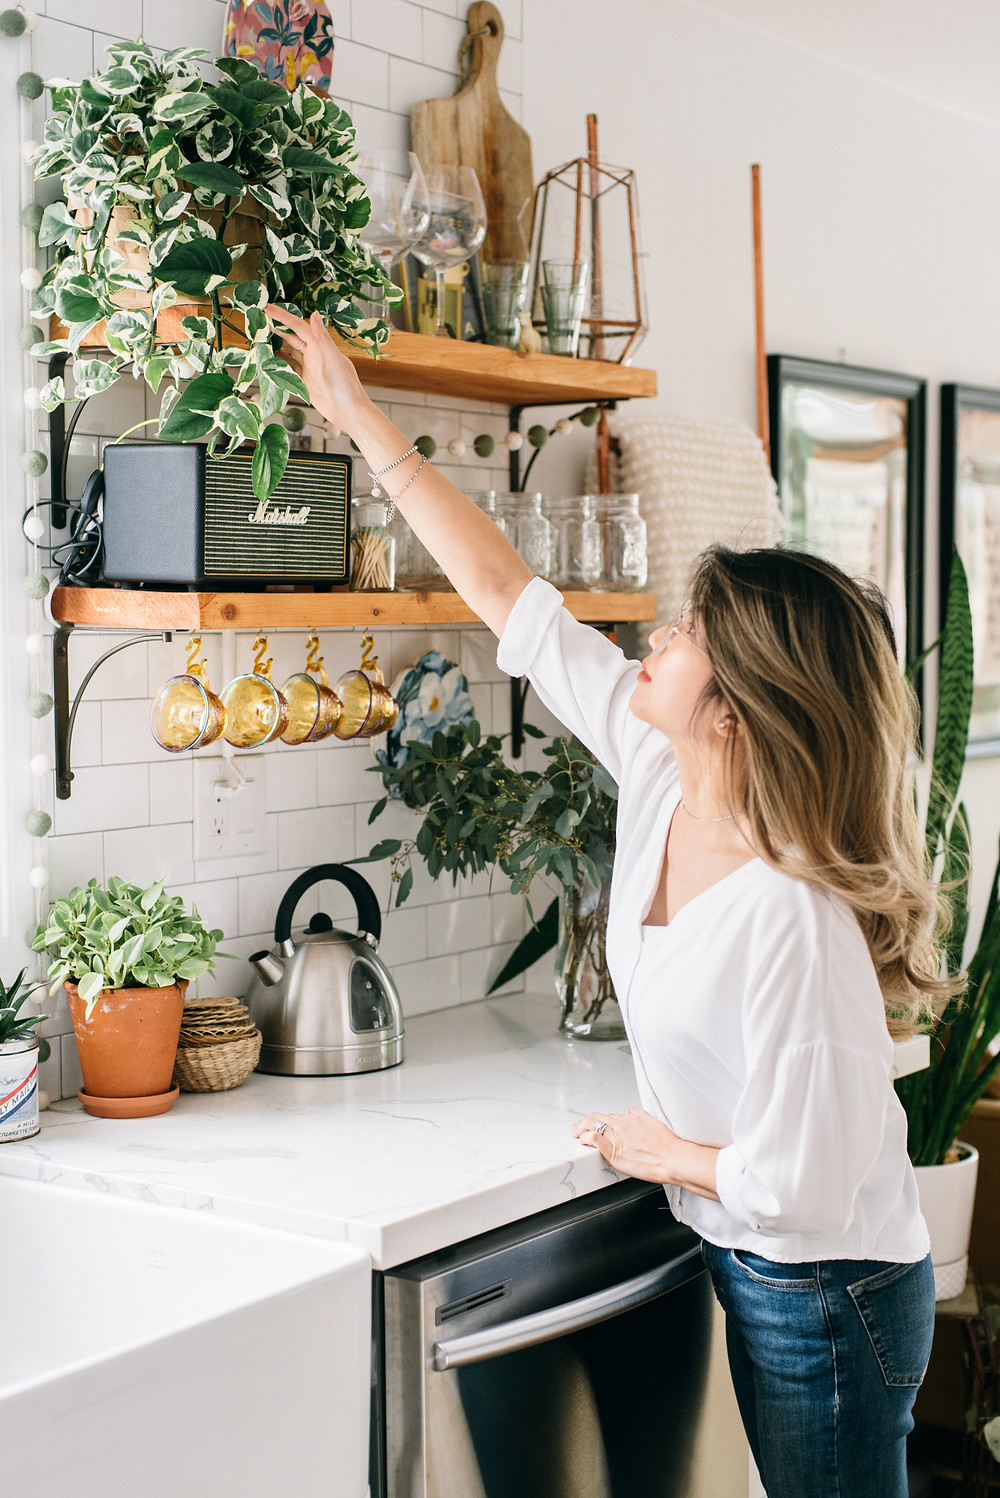 Janet Kwan captured this picture of me fondly fondling my plants. It looks staged because it is, but I actually go around touching every plant regularly to check their status.